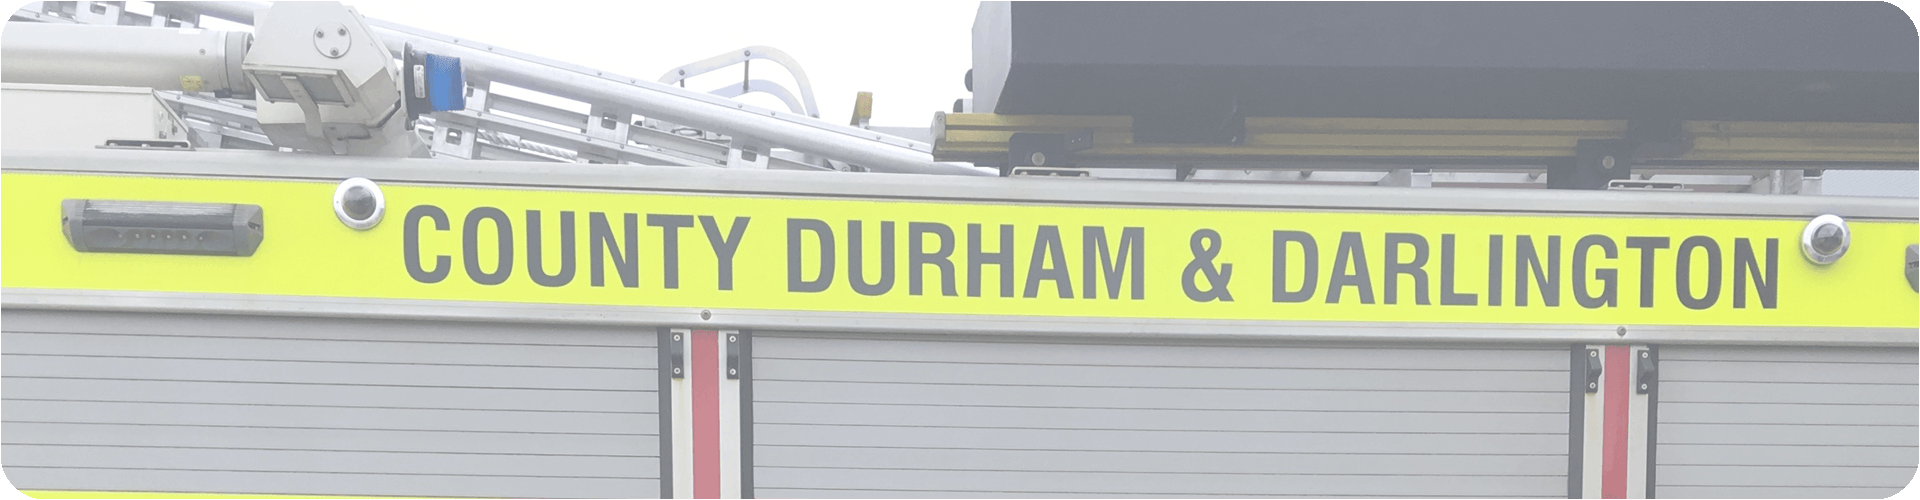 county durham and darlington fire engine banner